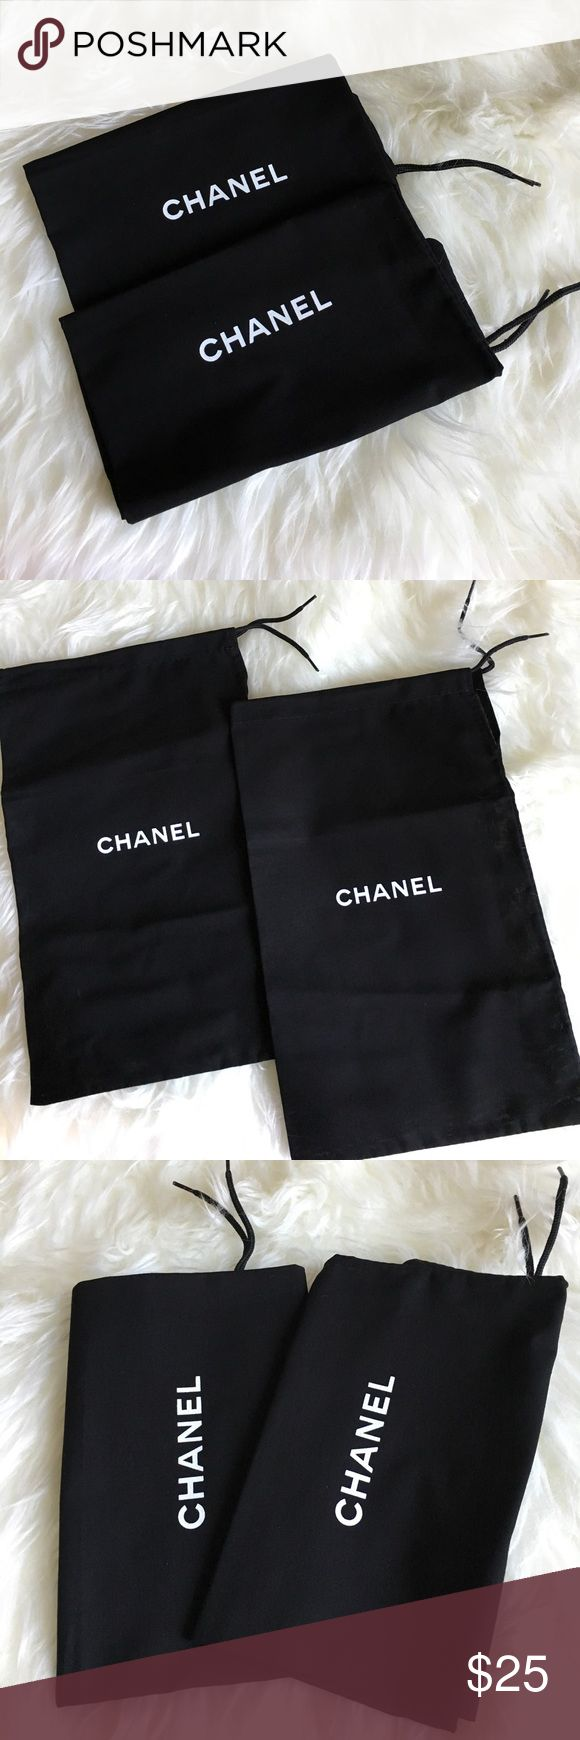 🌟SALE 1 DAY⭐️Authentic Chanel Shoe Dust Bags (2) ***Authentic Chanel Shoe Dust Bags. Size is 7 1/2 x 12 1/2. 2 Chanel Dust Bags. Dust bags came with a pair of Chanel Shoes I bought. The Dust bags fit Chanel: espadrilles, heels, flats, sneakers, sandals.. etc. You can only get these Dust bags when purchasing Chanel Shoes. 🛑SHOES NOT INCLUDED, PLEASE READ DESCRIPTION AND SEE ALL PICTURES BEFORE PURCHASING🛑 No Returns or Exchanges. EXCLUDED from bundle, if it's bundled order will be…